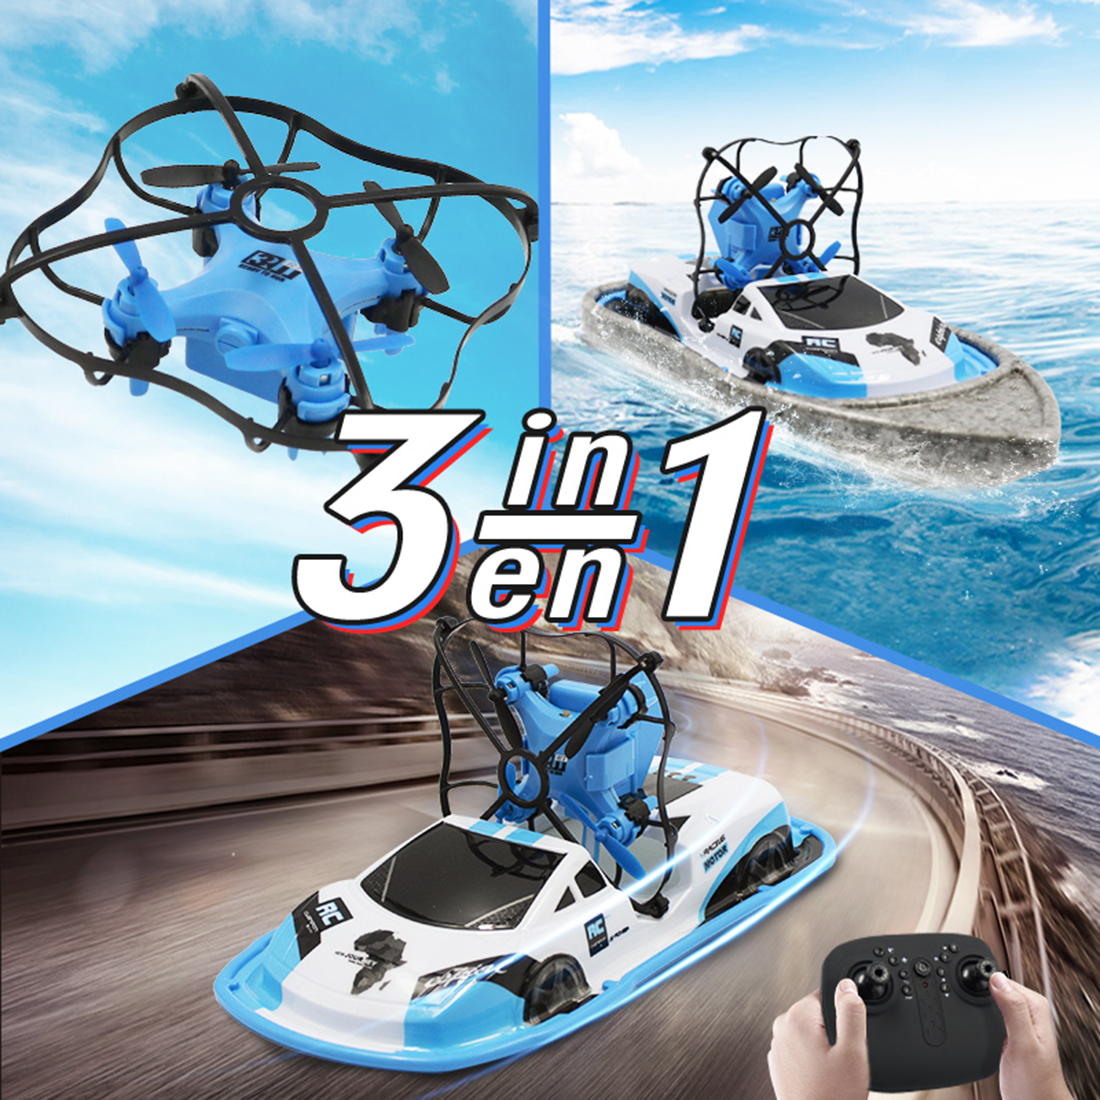 DWI Hot Sale DIY Model 2.4G 6 Axis Car Boat RC Quadcopter 3 IN 1 Drone from Chenghai